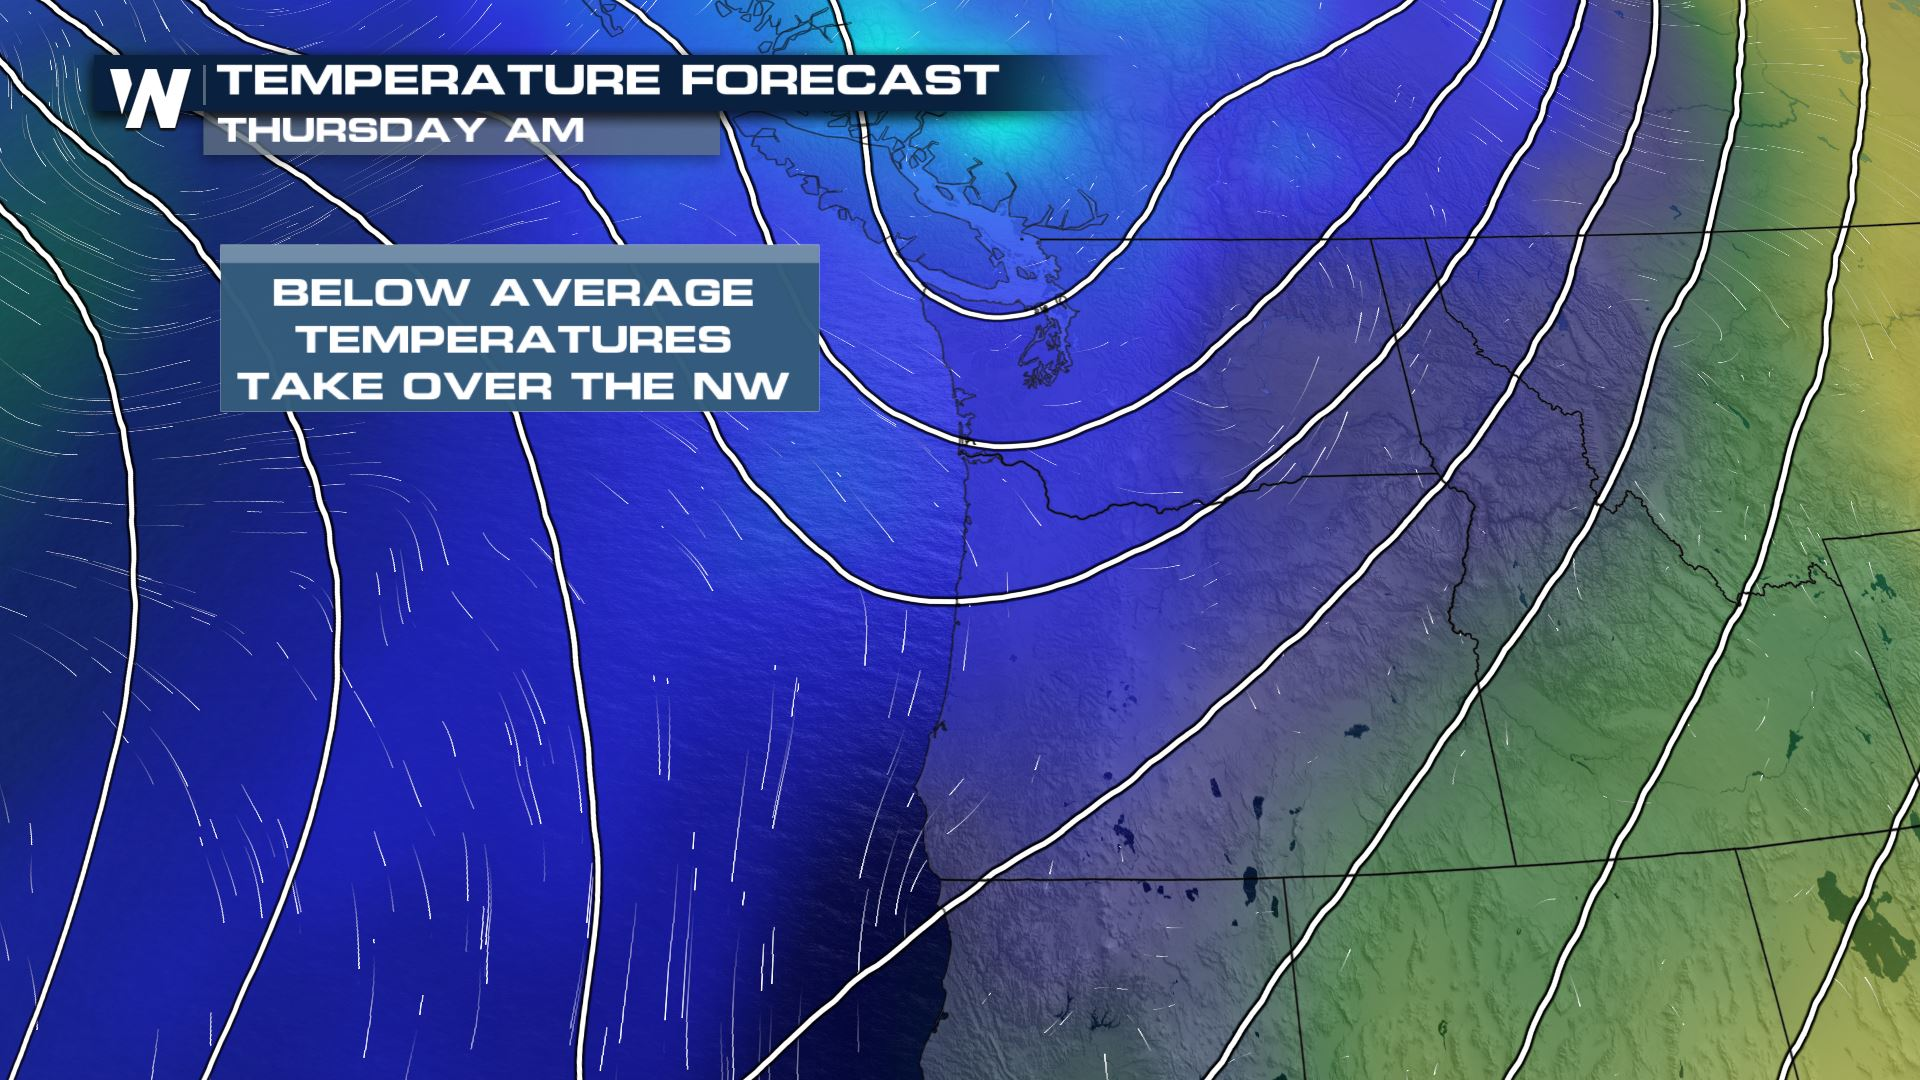 Cooler Air Moves through the Northwest this Week